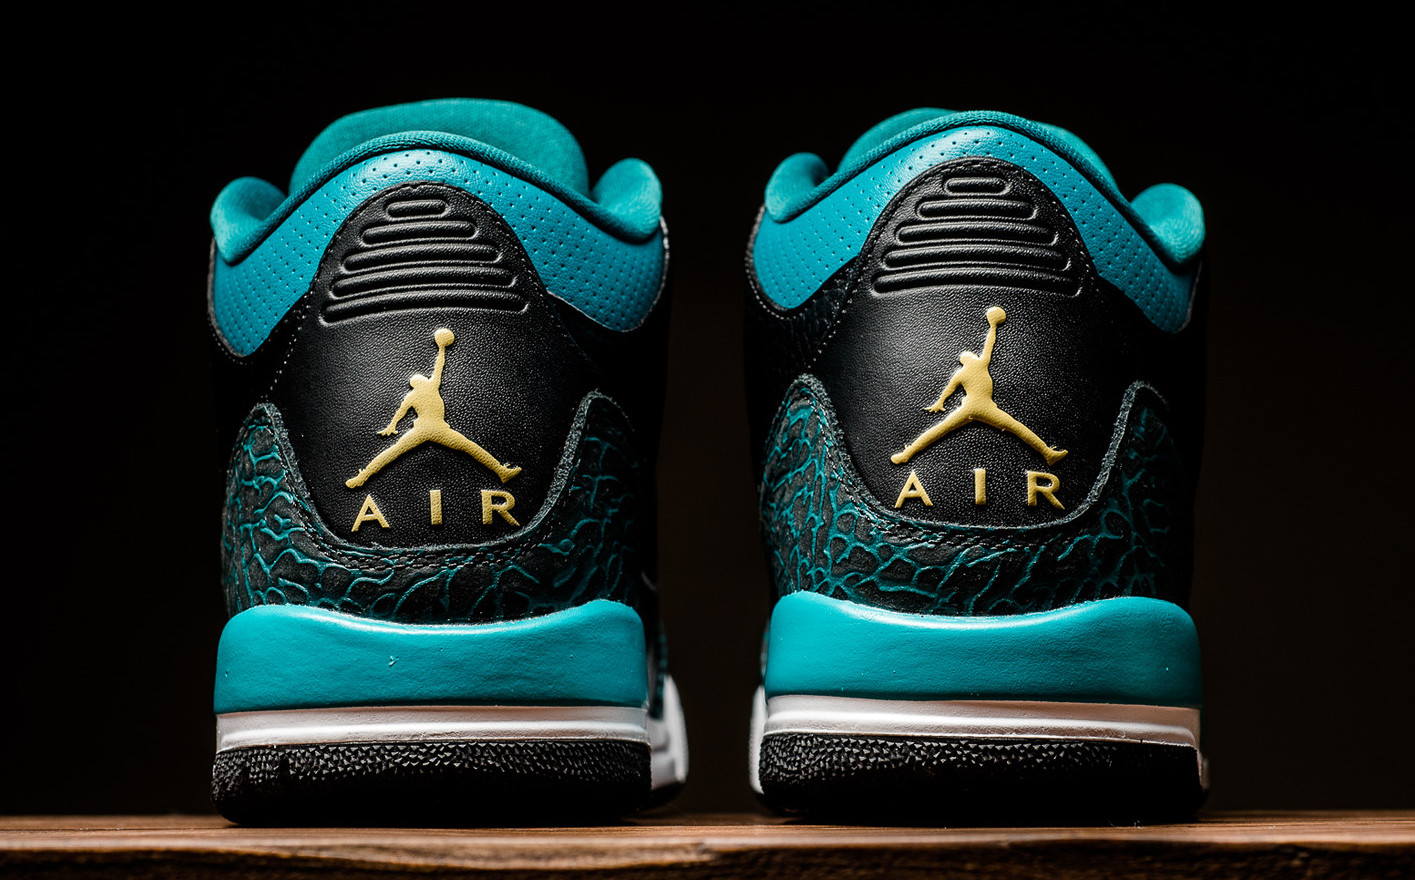 Air Jordan 3 GS Rio Teal Jaguars Release Date Back 441140-018